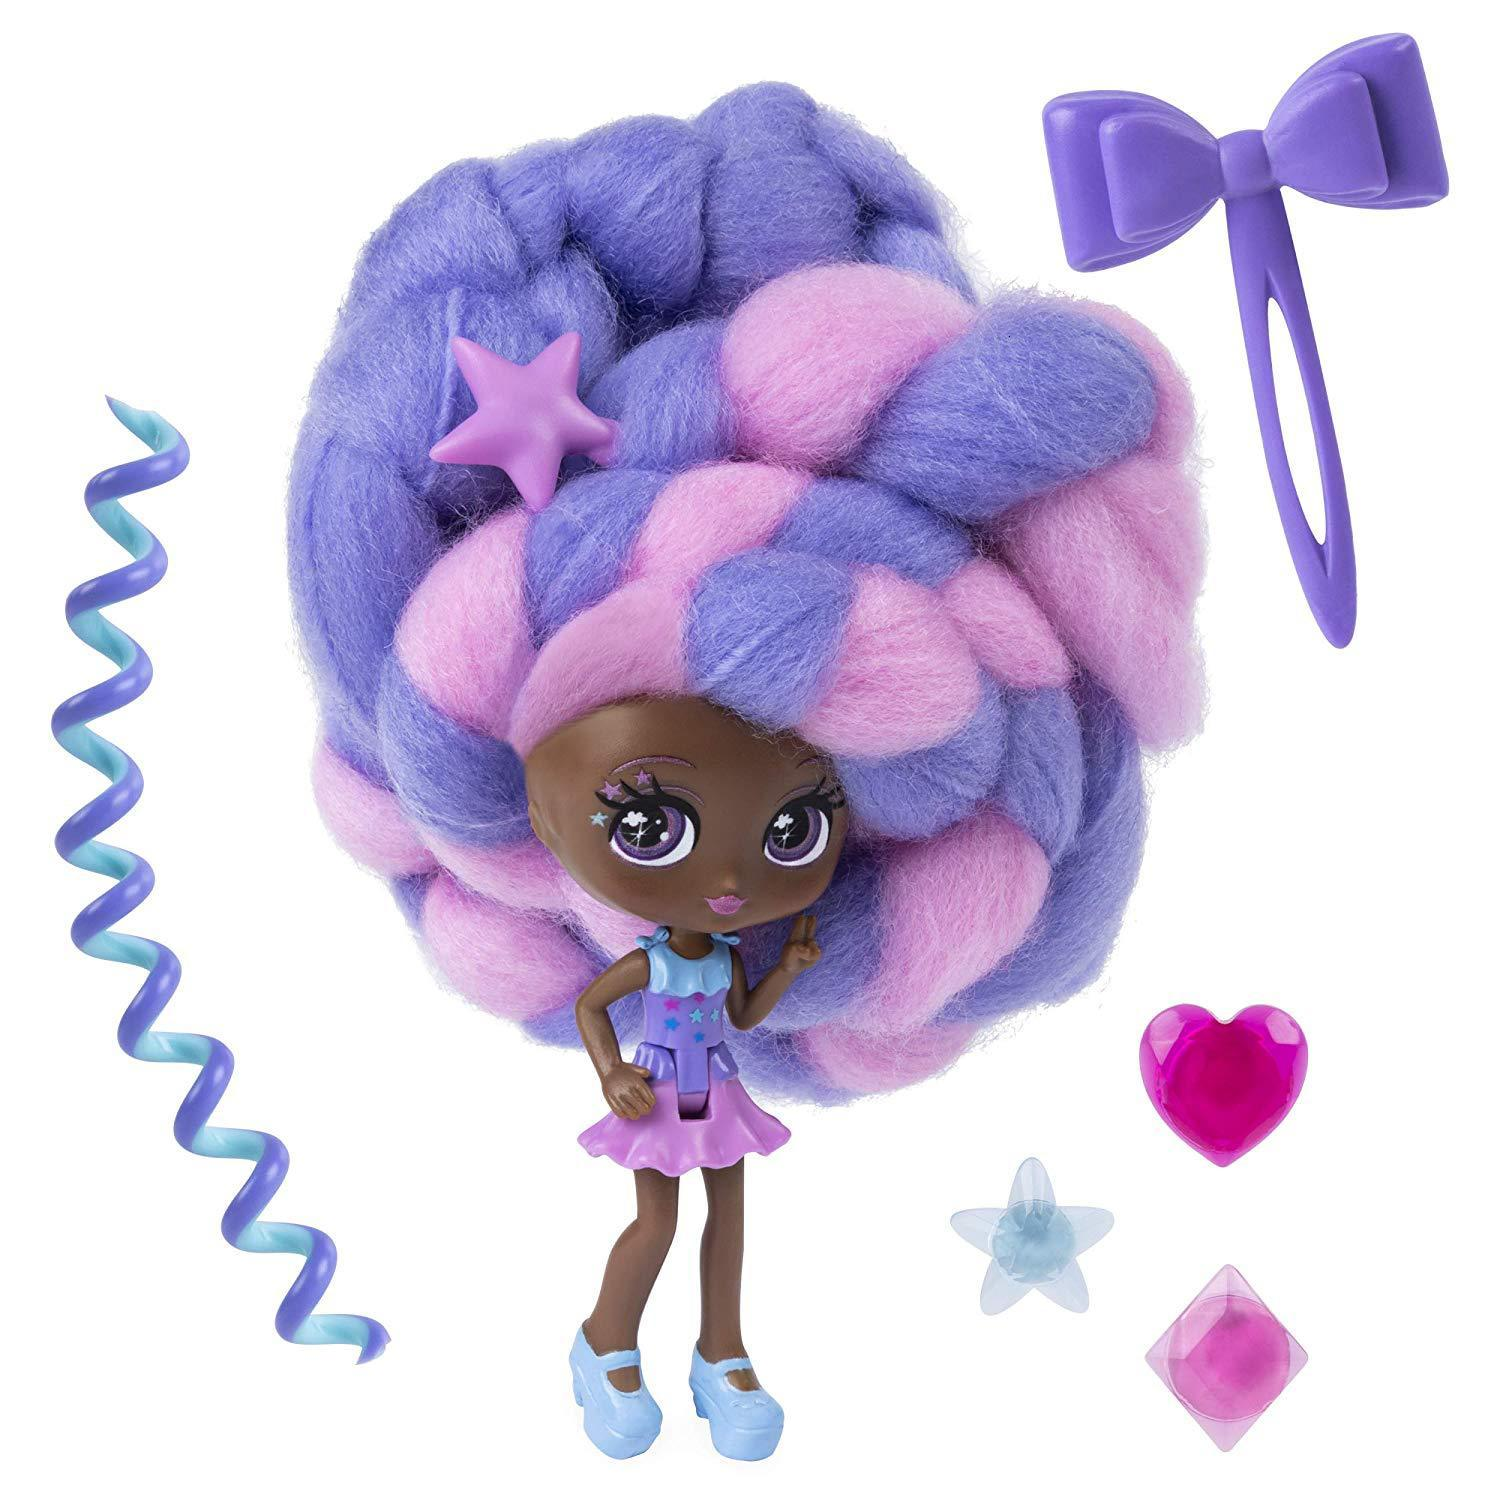 1Pc Doll Toy Cotton Candy Hair Marshmallow Hair Doll for Grils Christmas Gift